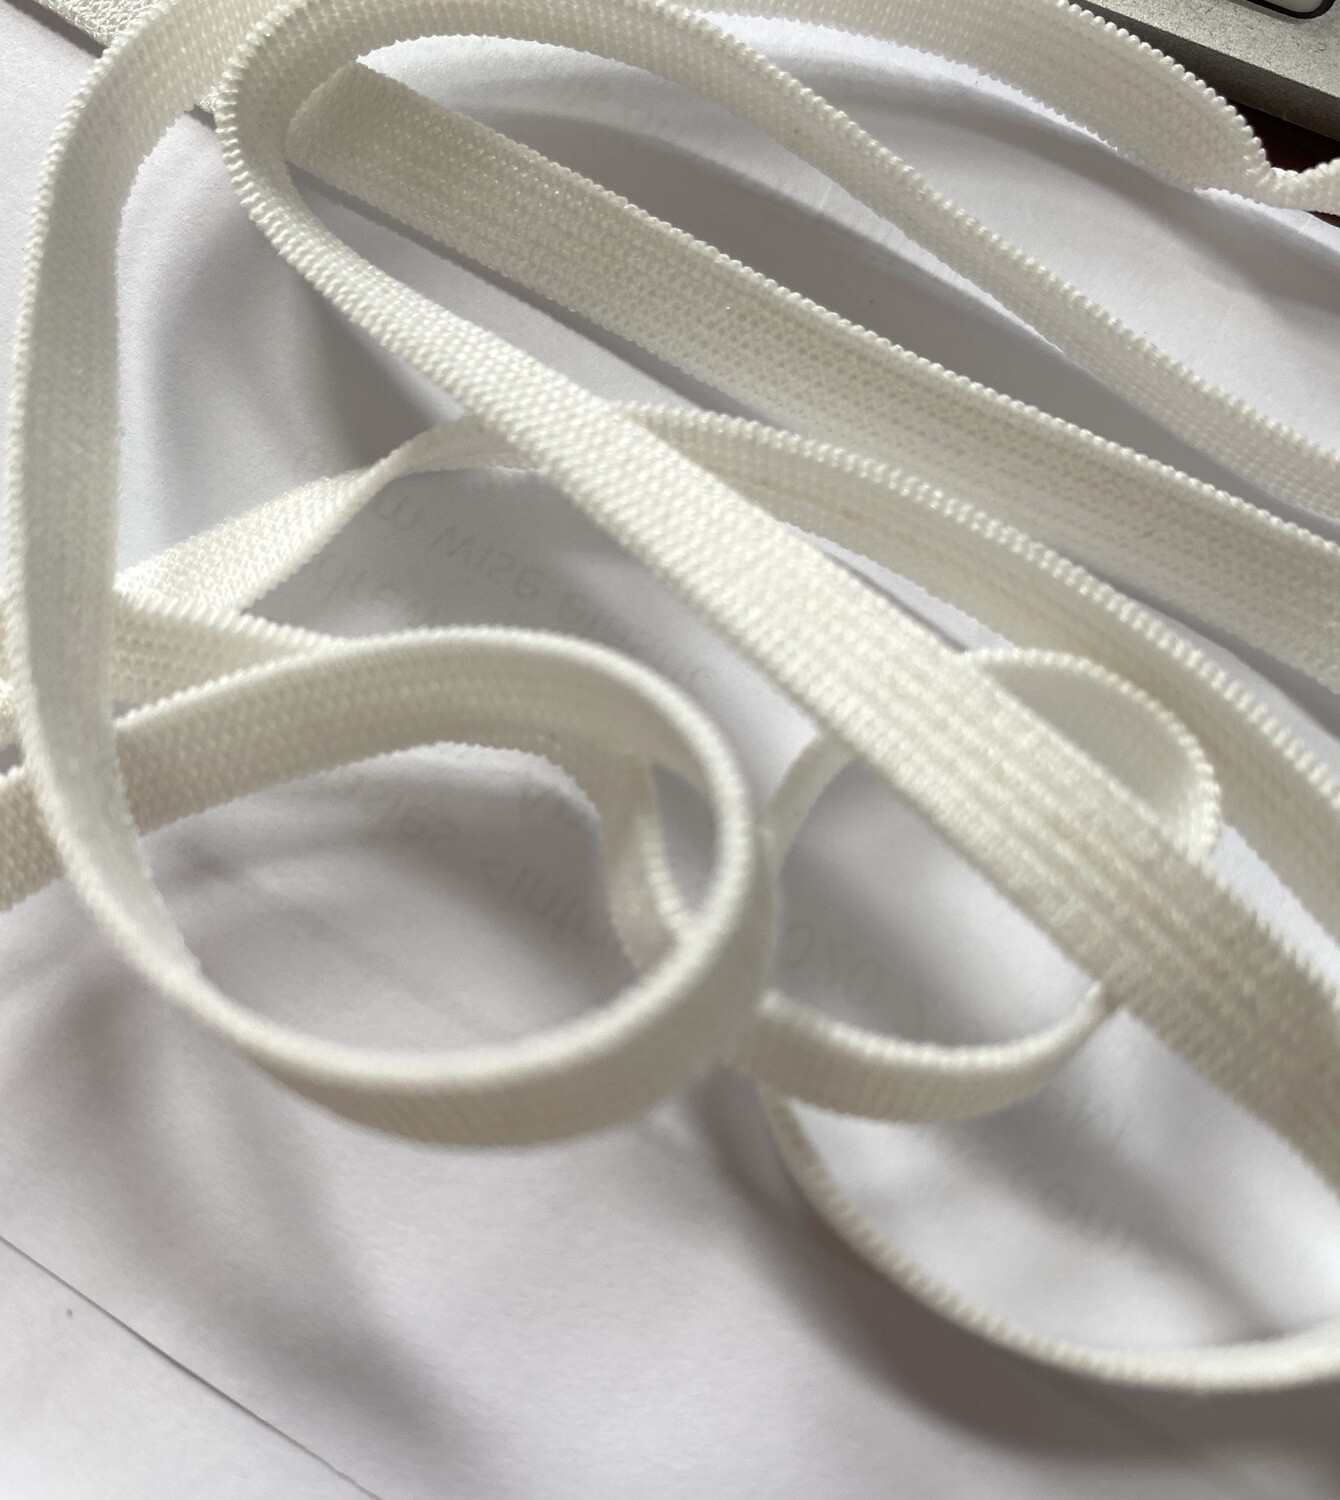 "Special Order- 1/4"" White Knit Elastic $0.50 Per Meter - Made In Canada"